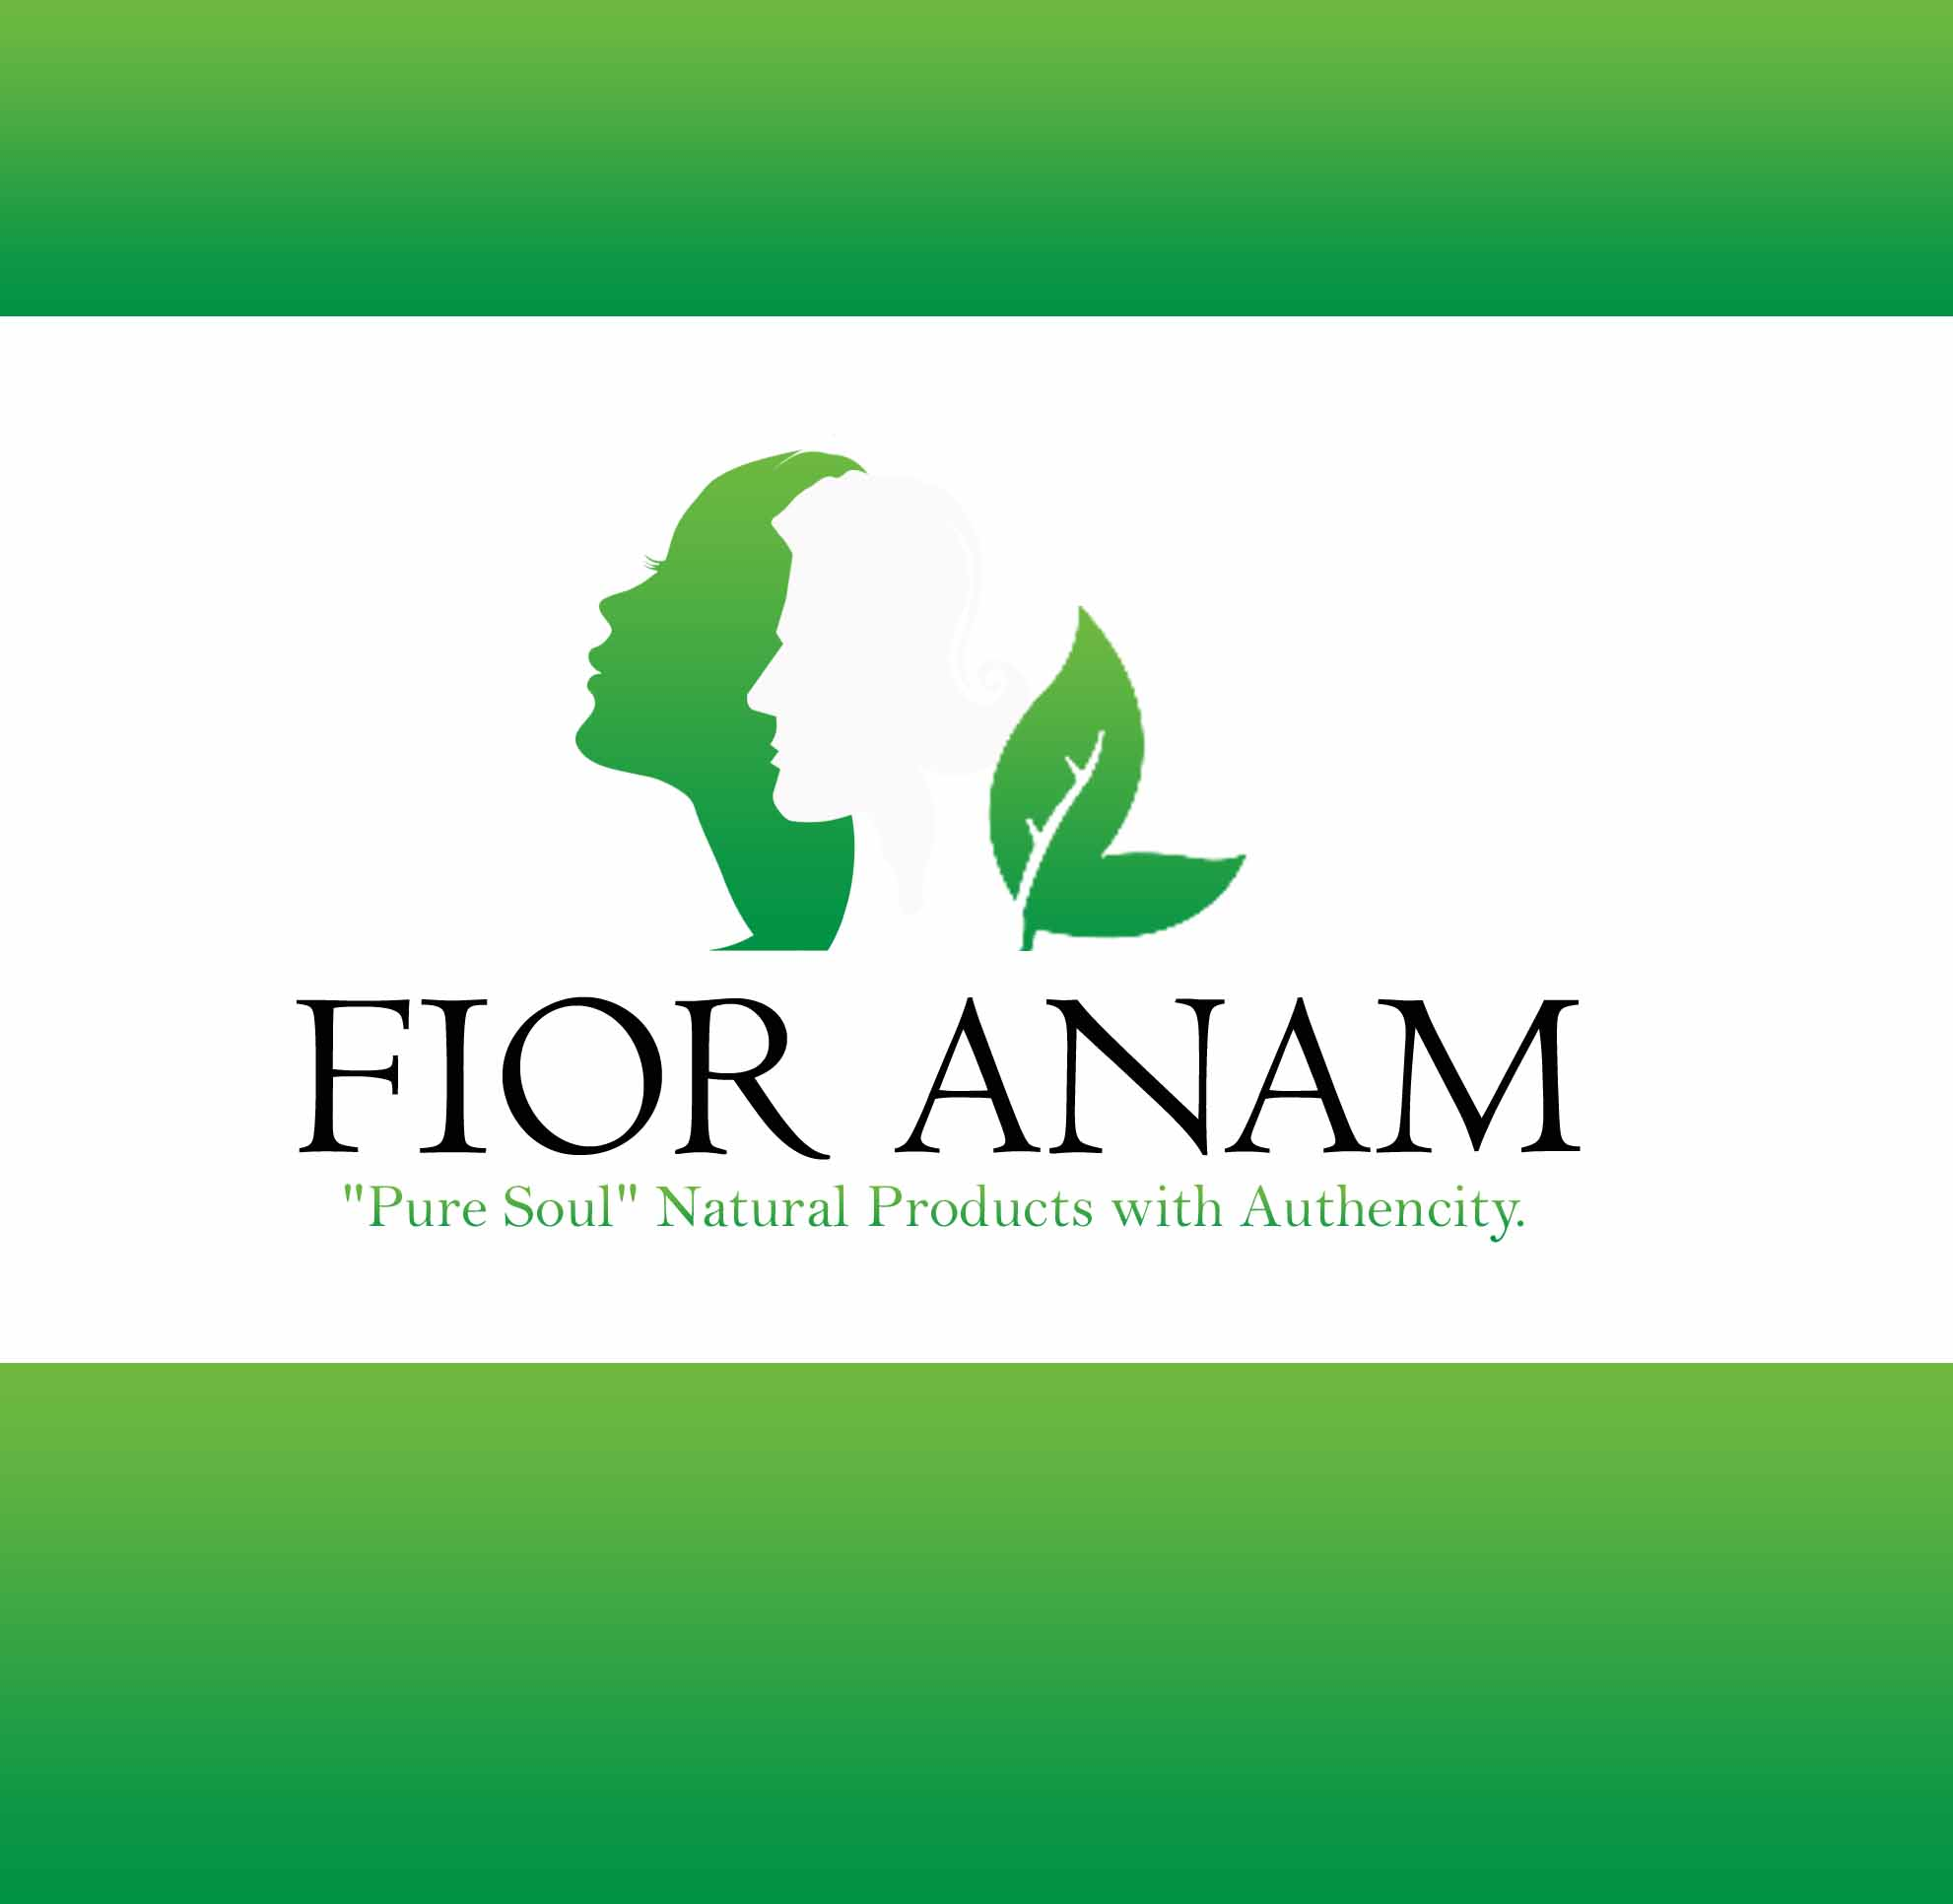 Logo Design by JSDESIGNGROUP - Entry No. 173 in the Logo Design Contest Creative Logo Design for Fior Anam.